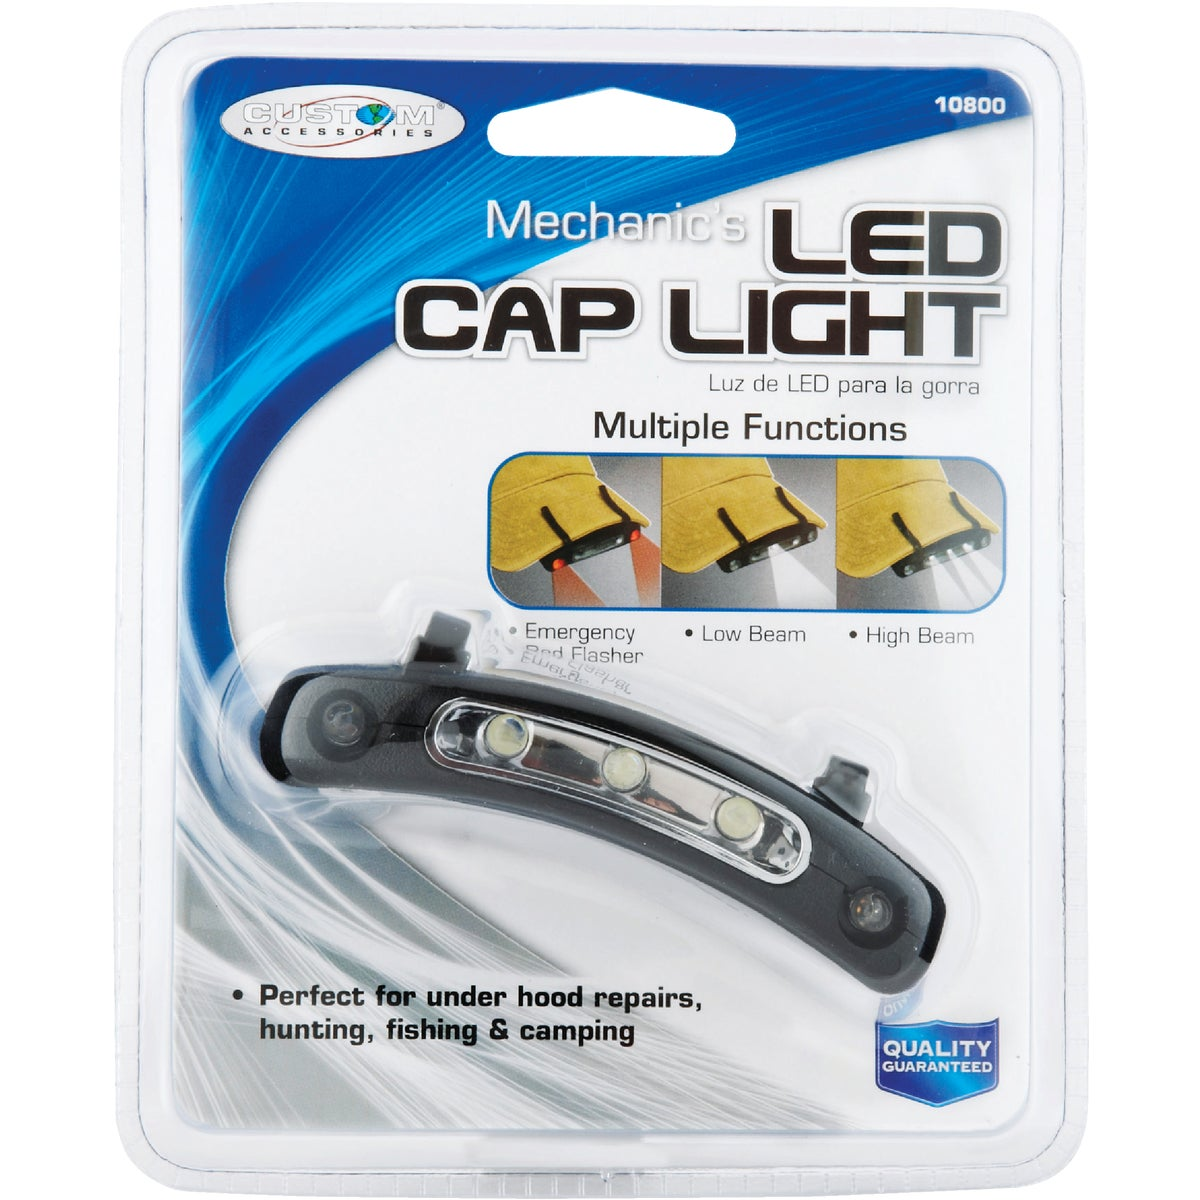 MECHANICS LED CAP LIGHT